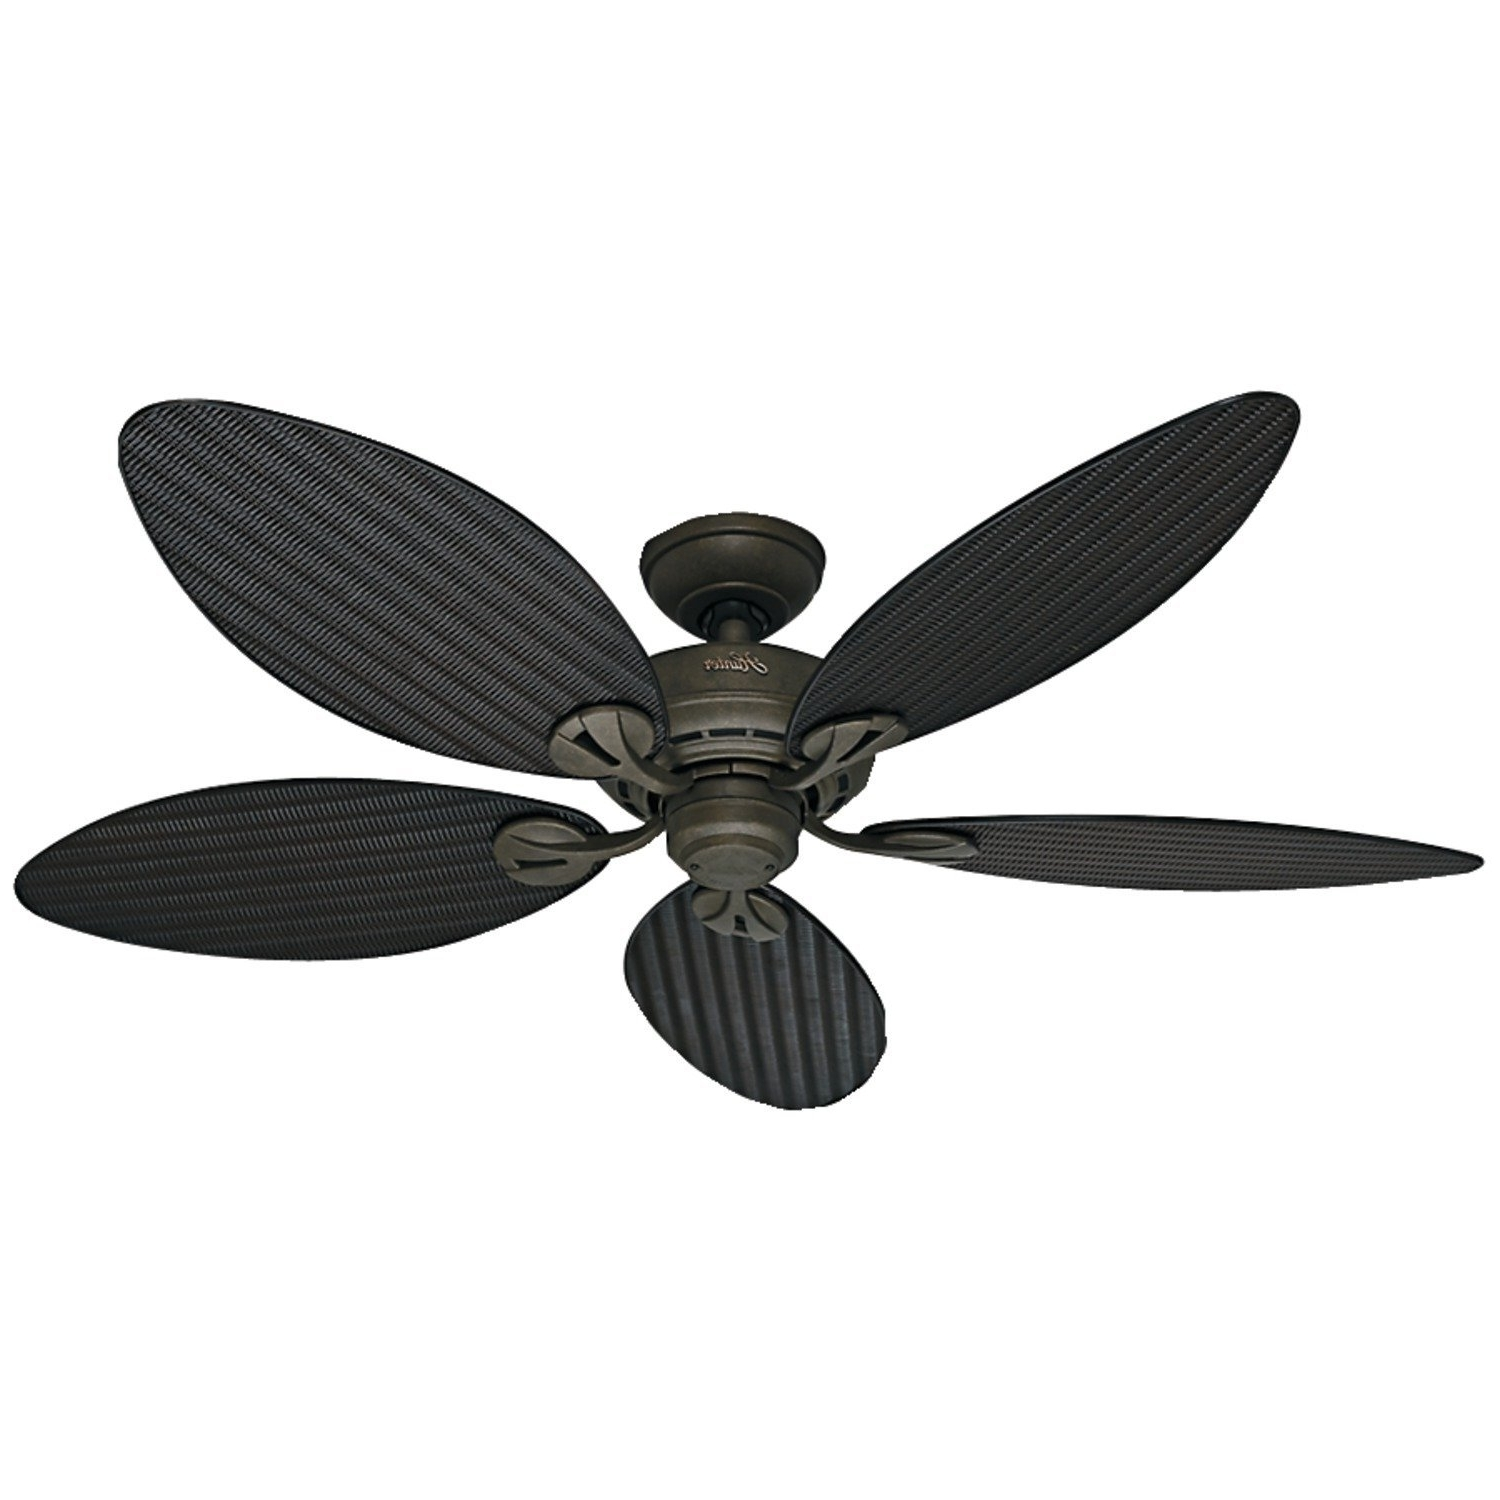 Outdoor Ceiling Fans With Bamboo Blades Intended For Widely Used Ceiling: Marvellous Ceiling Fans With Leaf Shaped Blades Wicker (View 8 of 20)